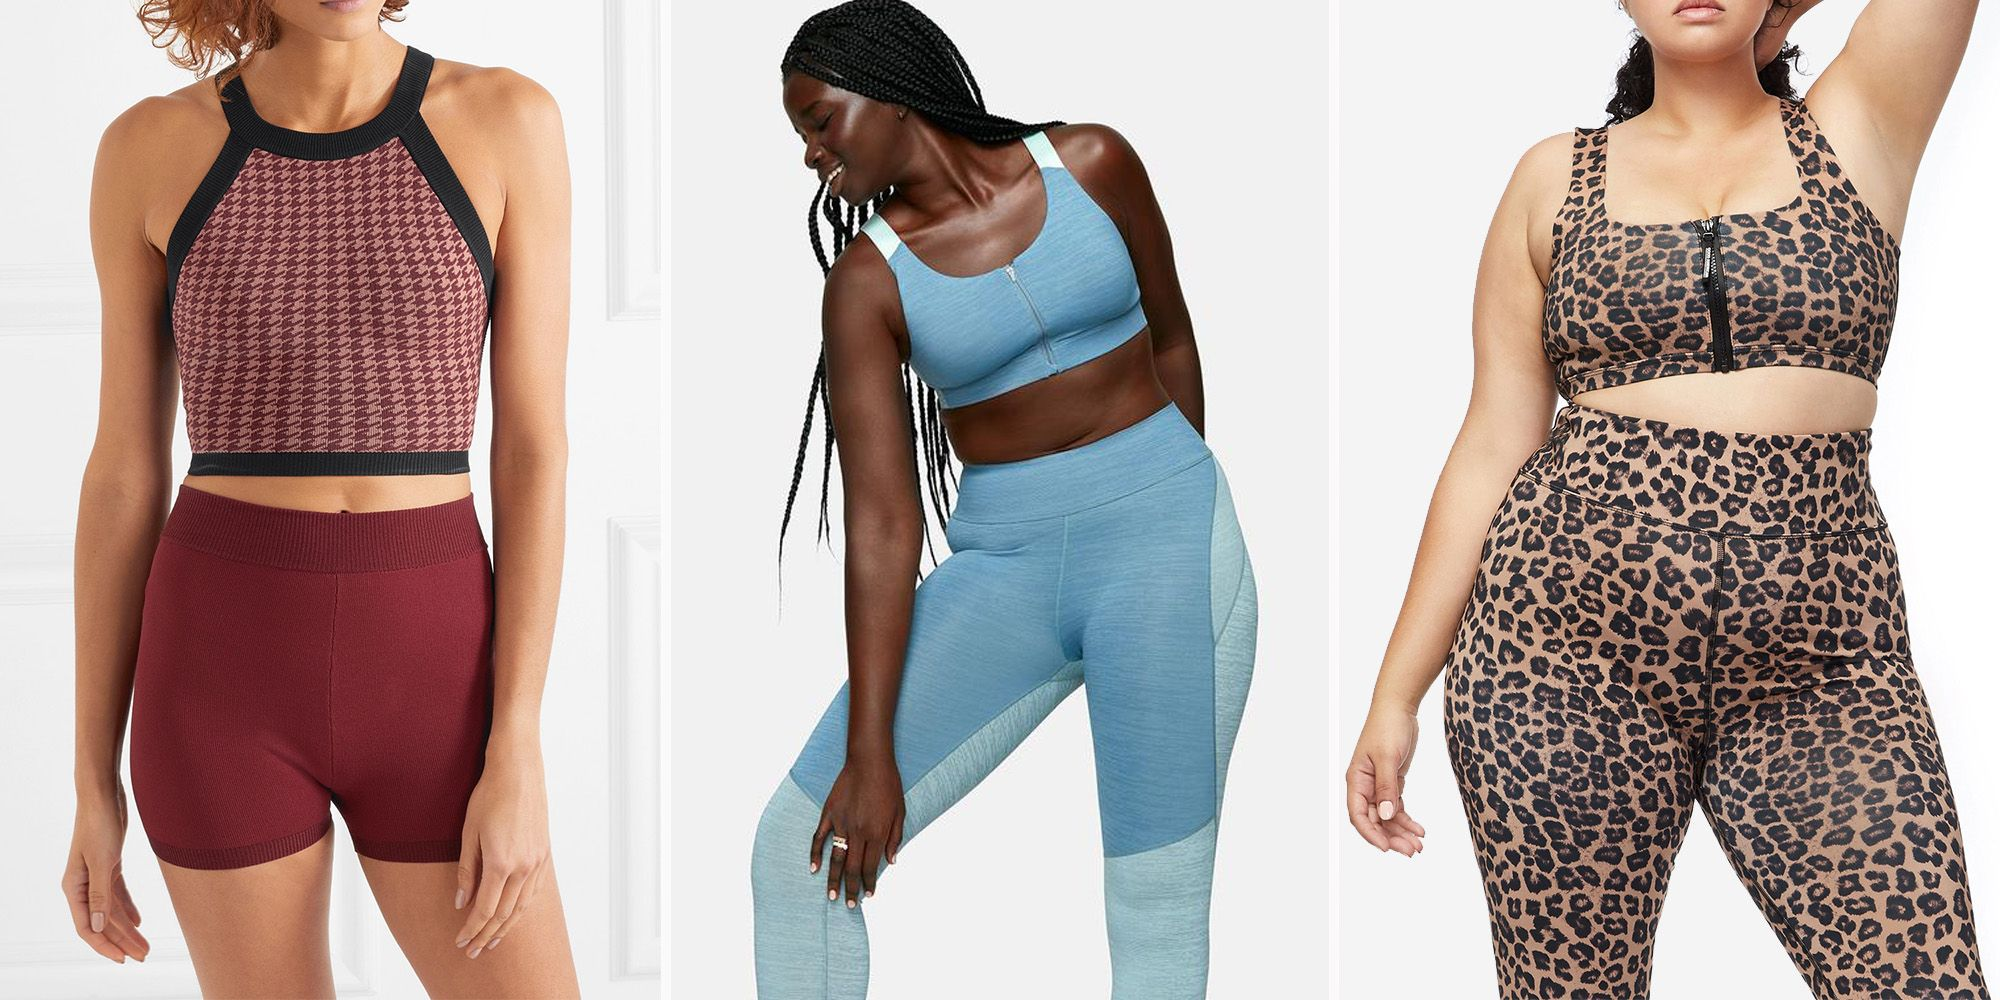 19 Activewear Brands Every Stylish Woman Should Try